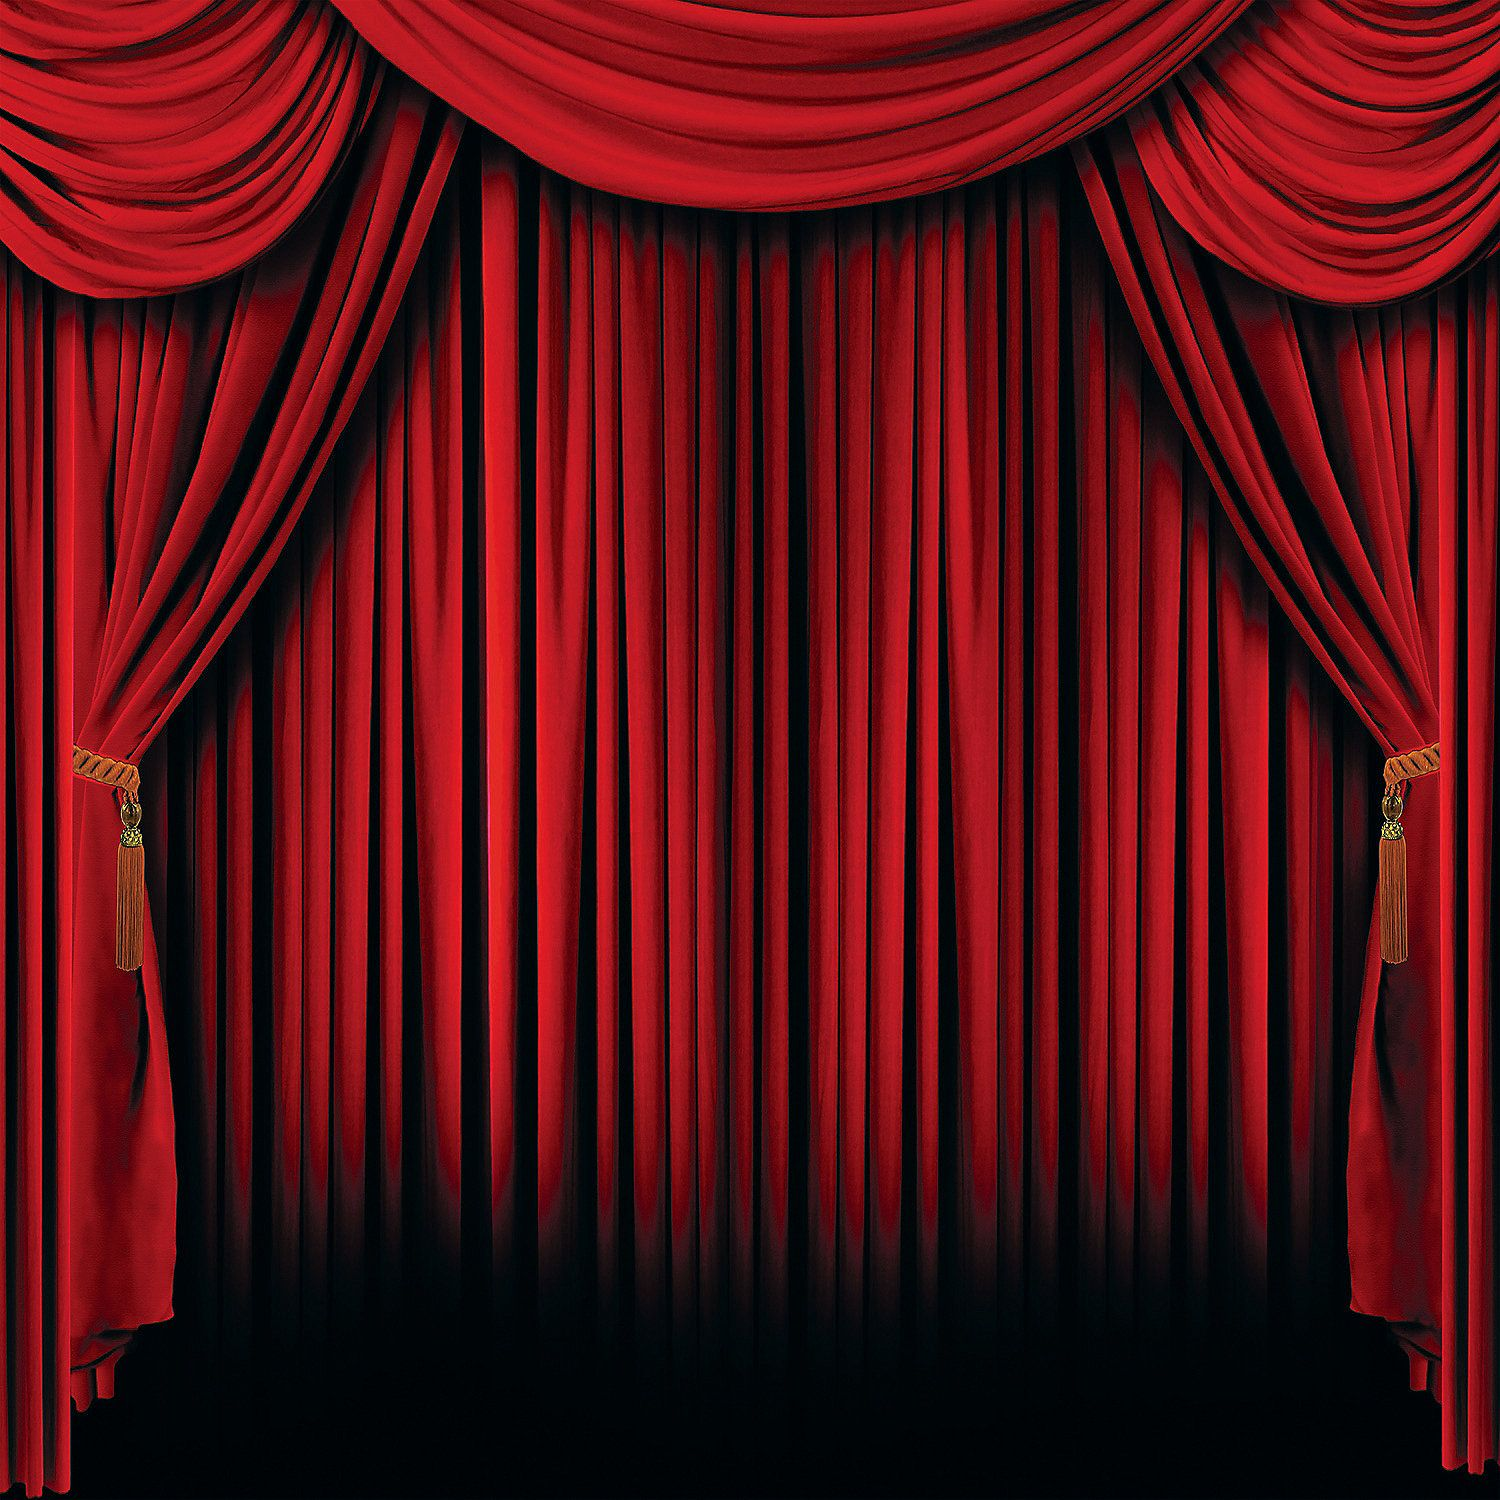 Red Curtain Backdrop Telones De Fondo De Fiesta Cortinas Rojas